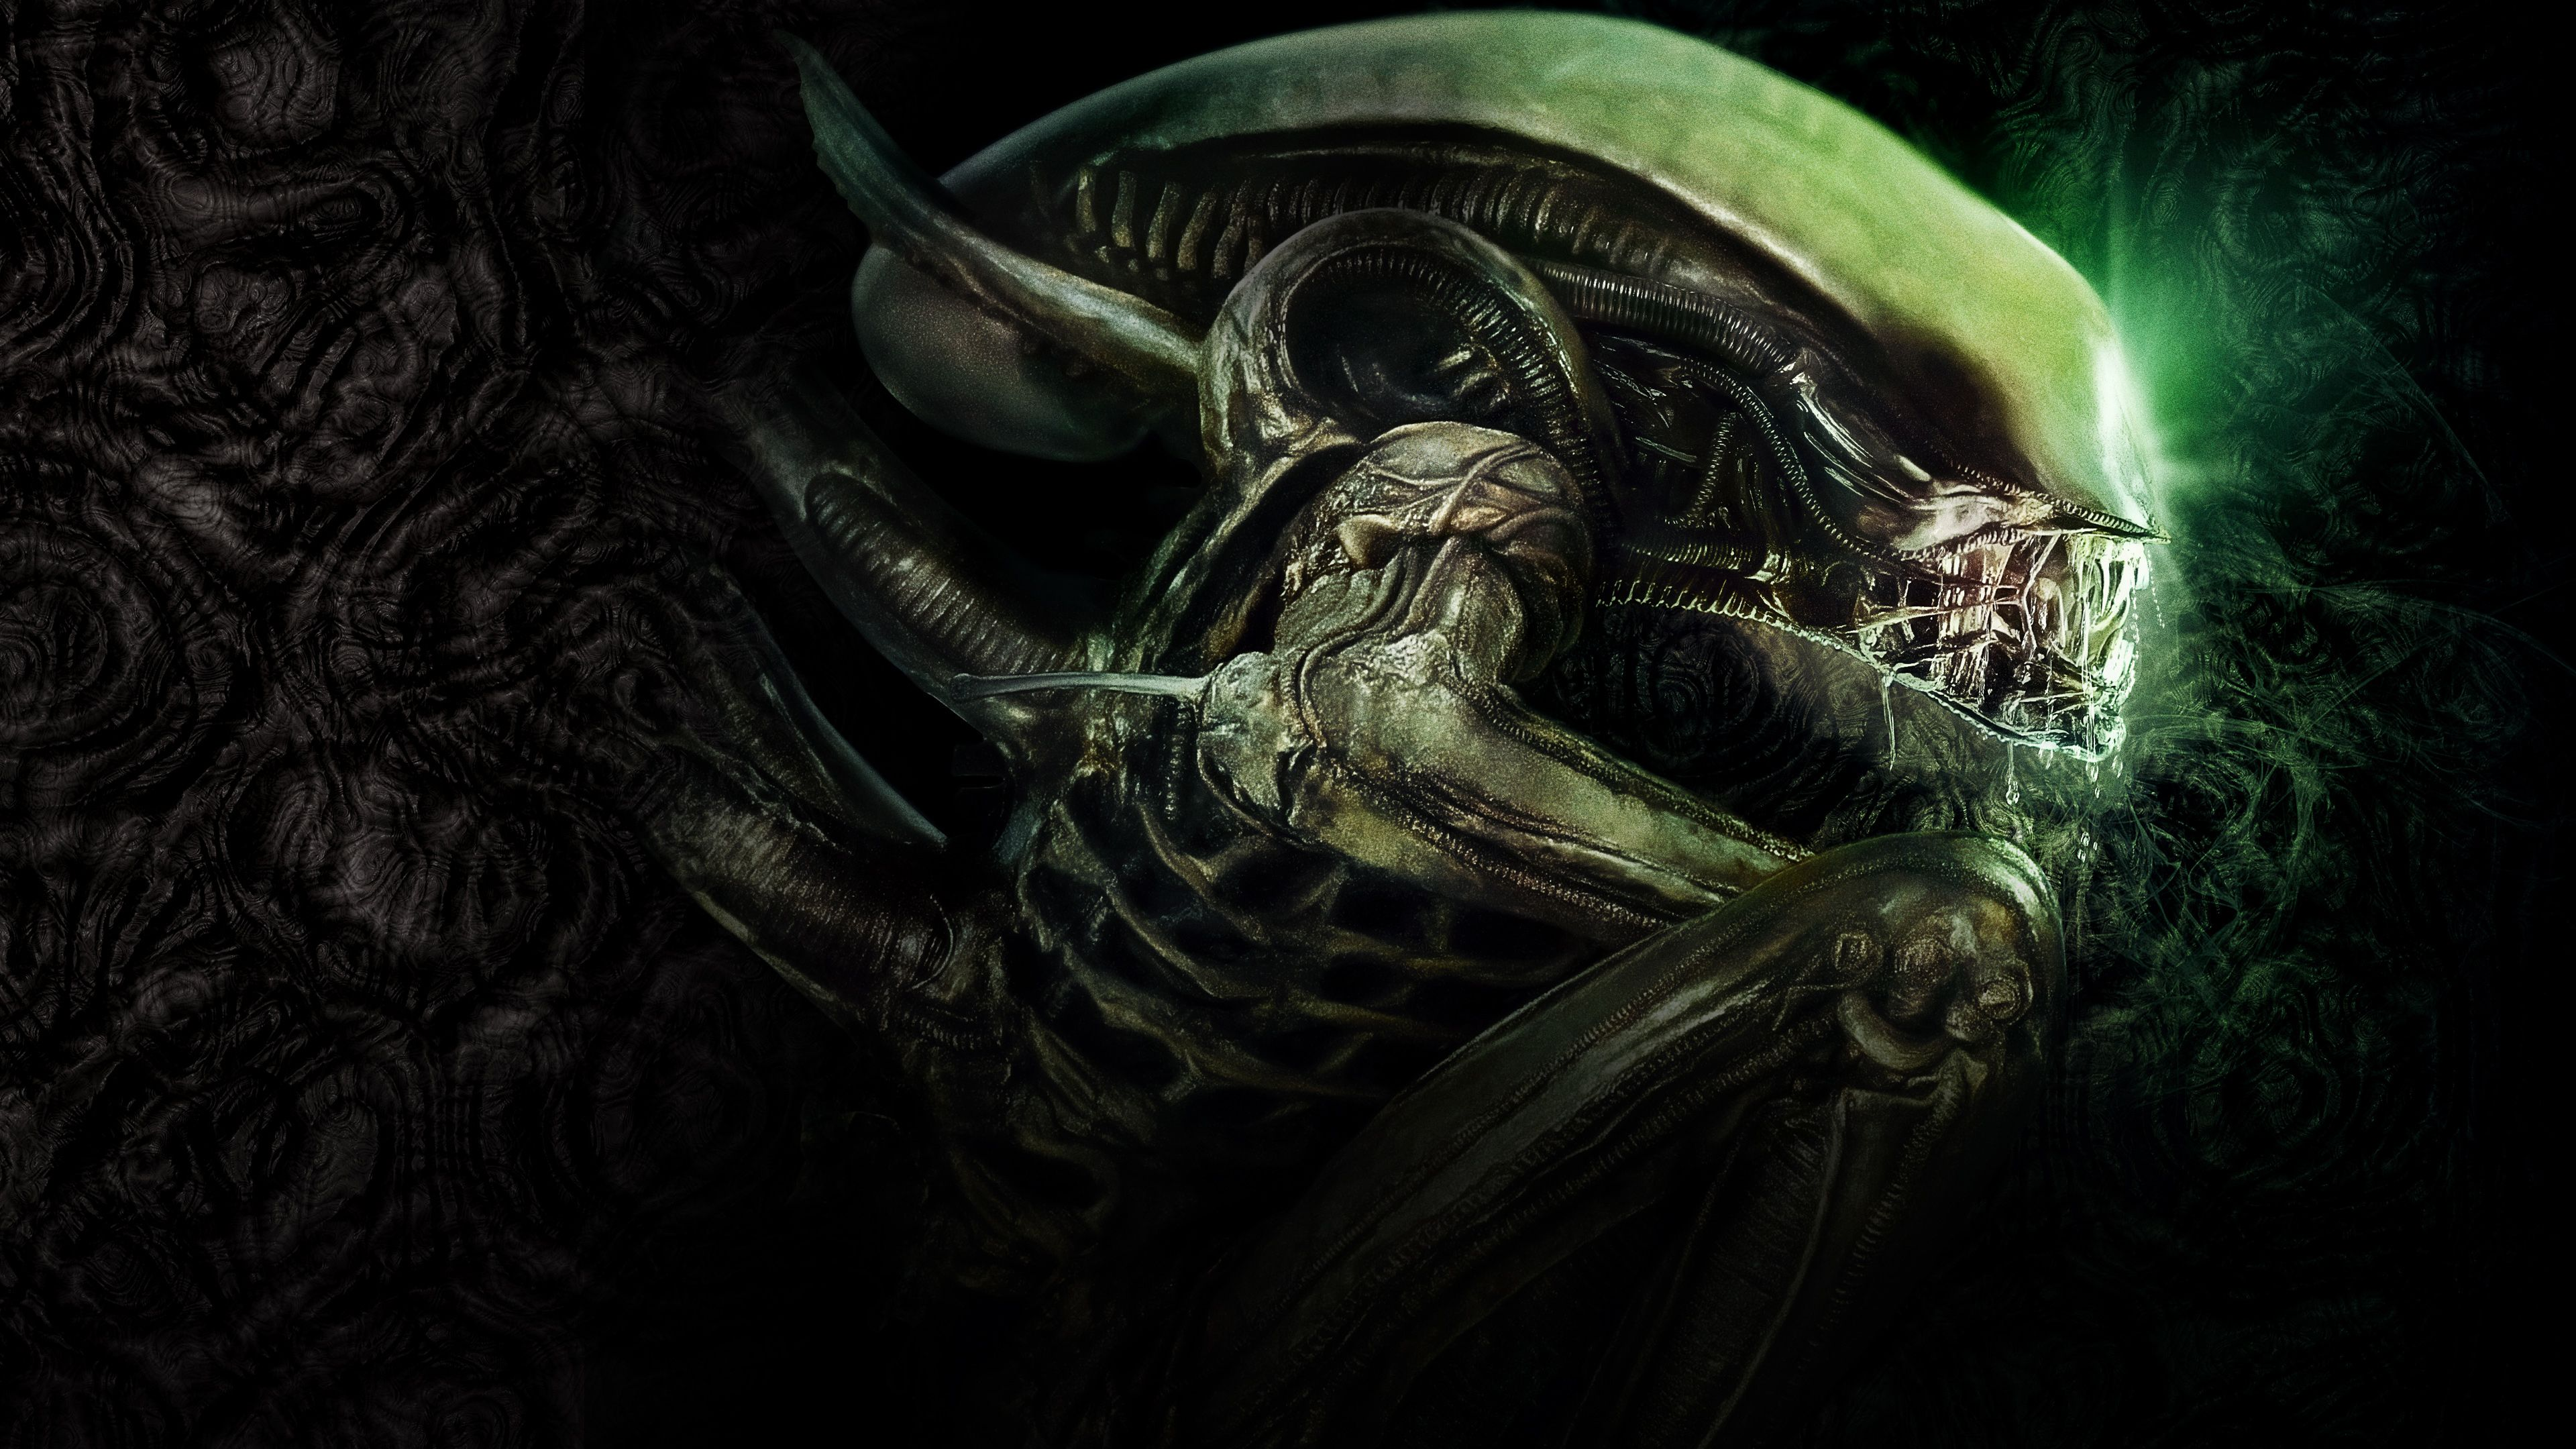 3840x2160 Alien 4k Ultra HD Wallpaper | Background Image | 3840x2160 | ID ...